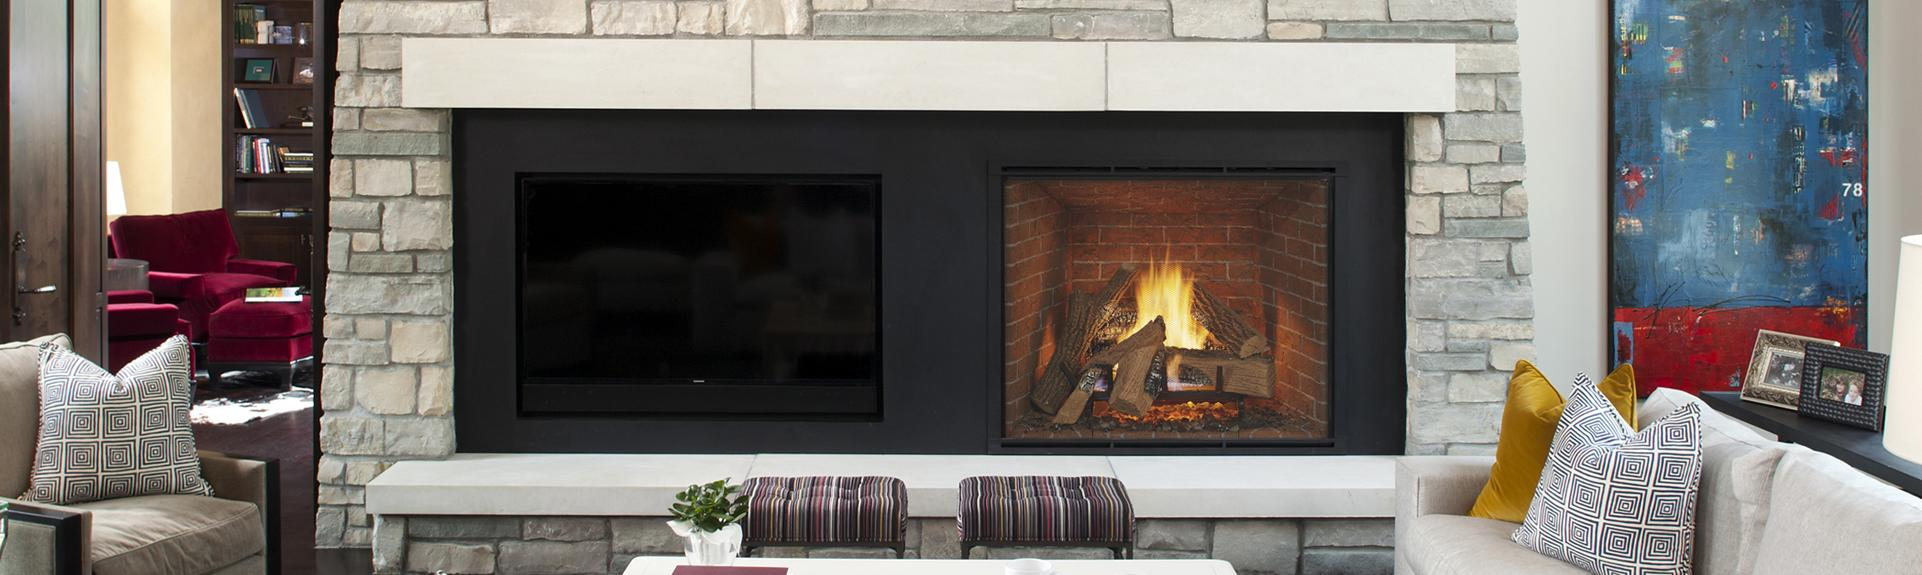 Cool Gas Fireplace Services Fireplace Repairs Monmouth County Download Free Architecture Designs Scobabritishbridgeorg